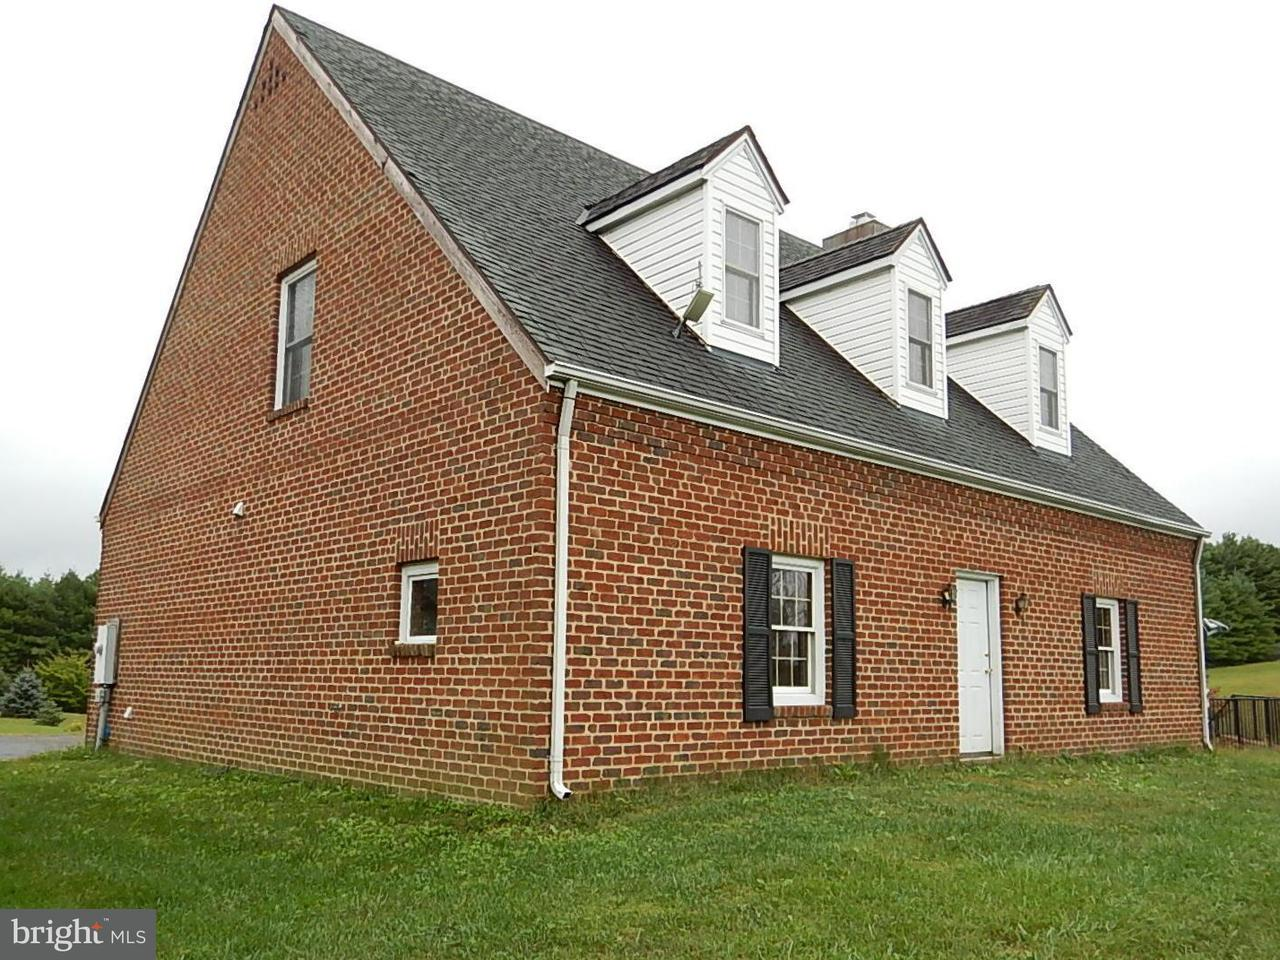 Other Residential for Rent at 13886 Berlin Tpke #a Lovettsville, Virginia 20180 United States